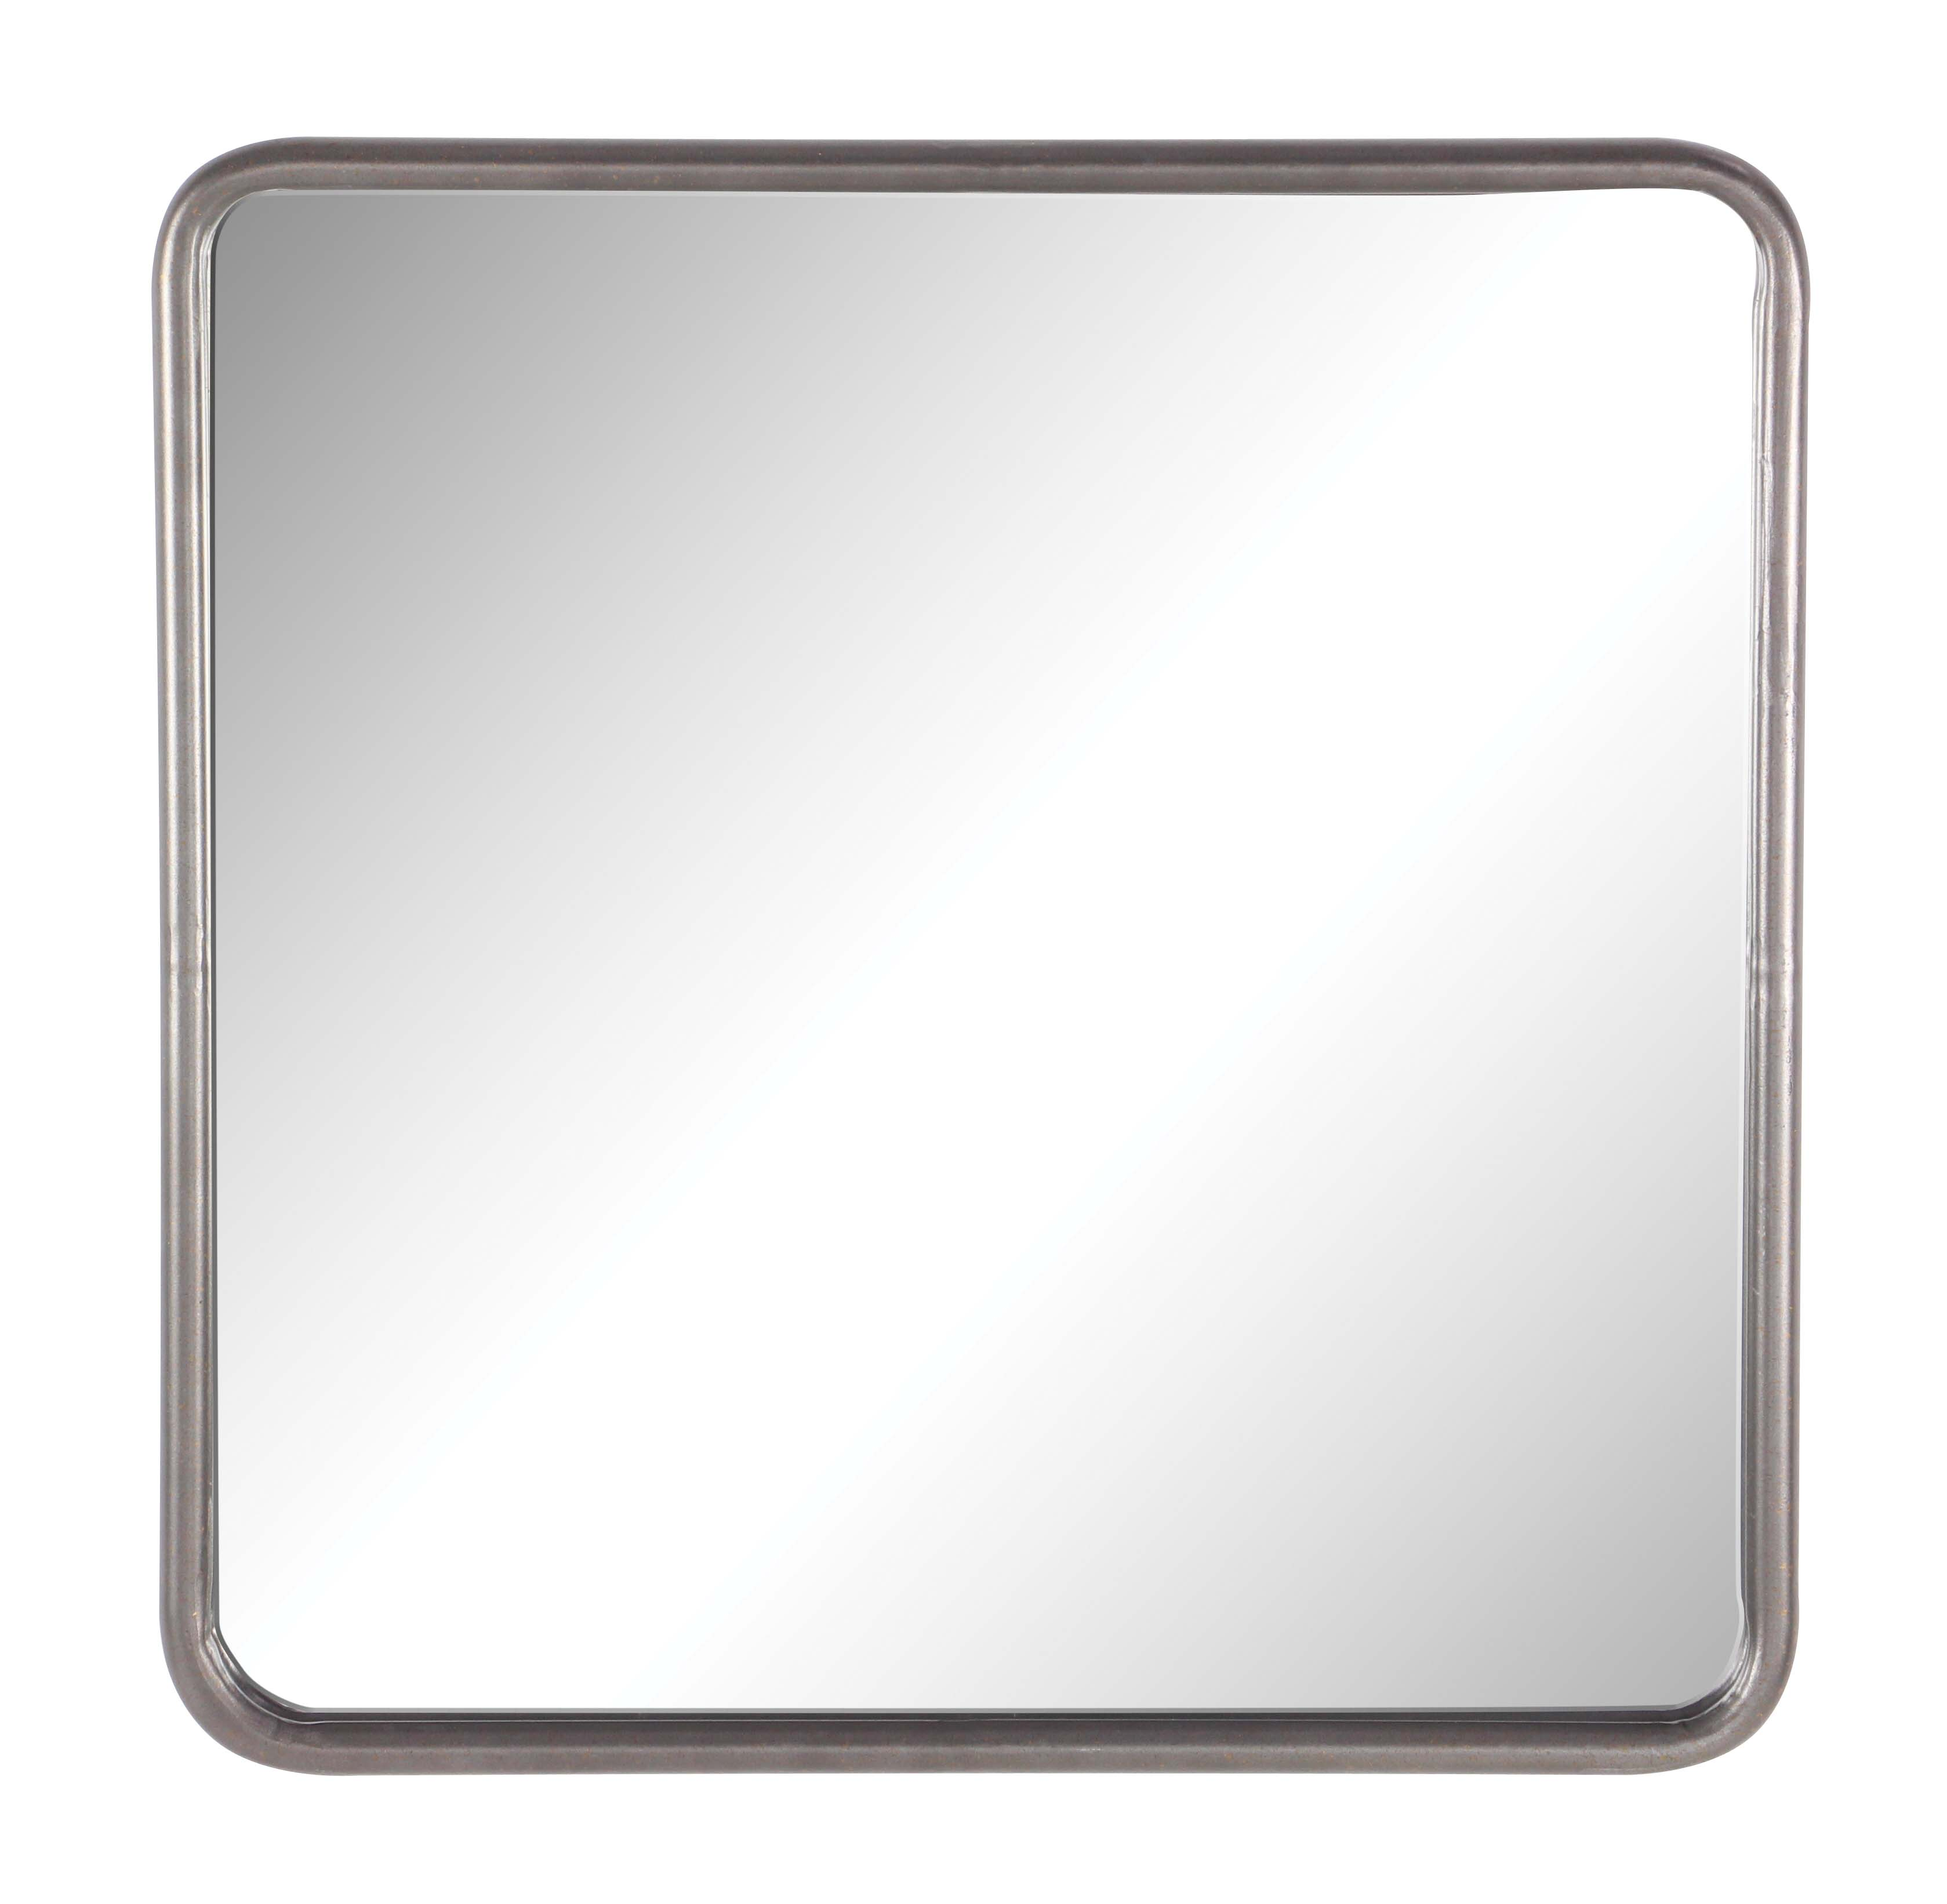 30 x 30 mirror frameless decmode modern 30 inch metal rounded square wall mirror gray